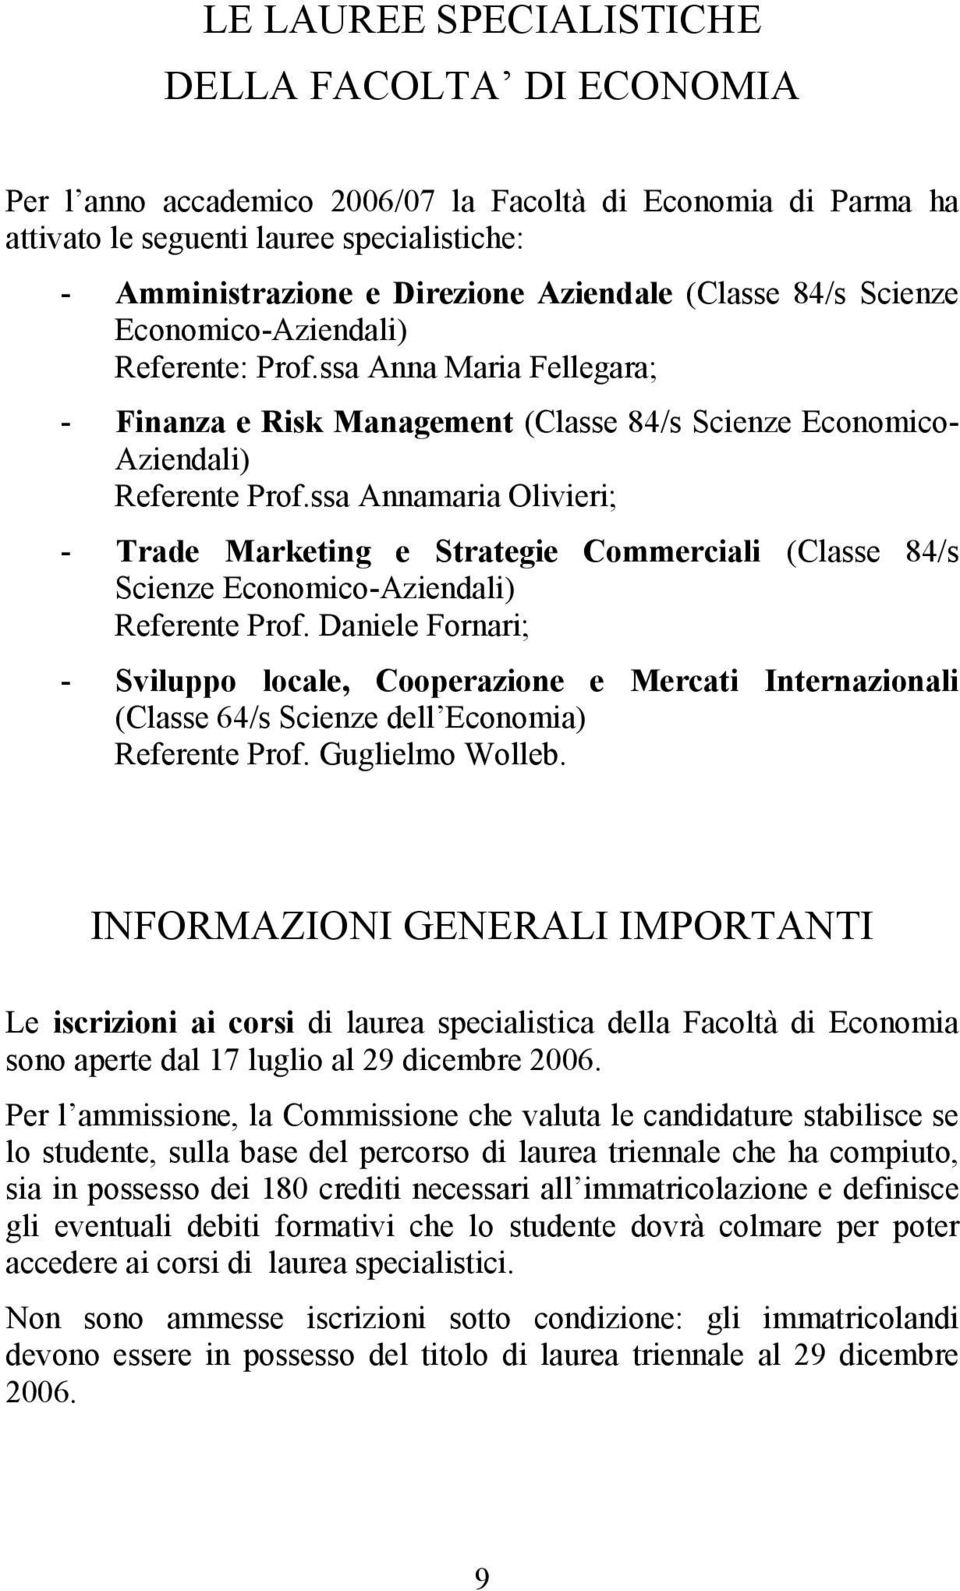 ssa Annamaria Olivieri; - Trade Marketing e Strategie Commerciali (Classe 84/s Scienze Economico-Aziendali) Referente Prof.